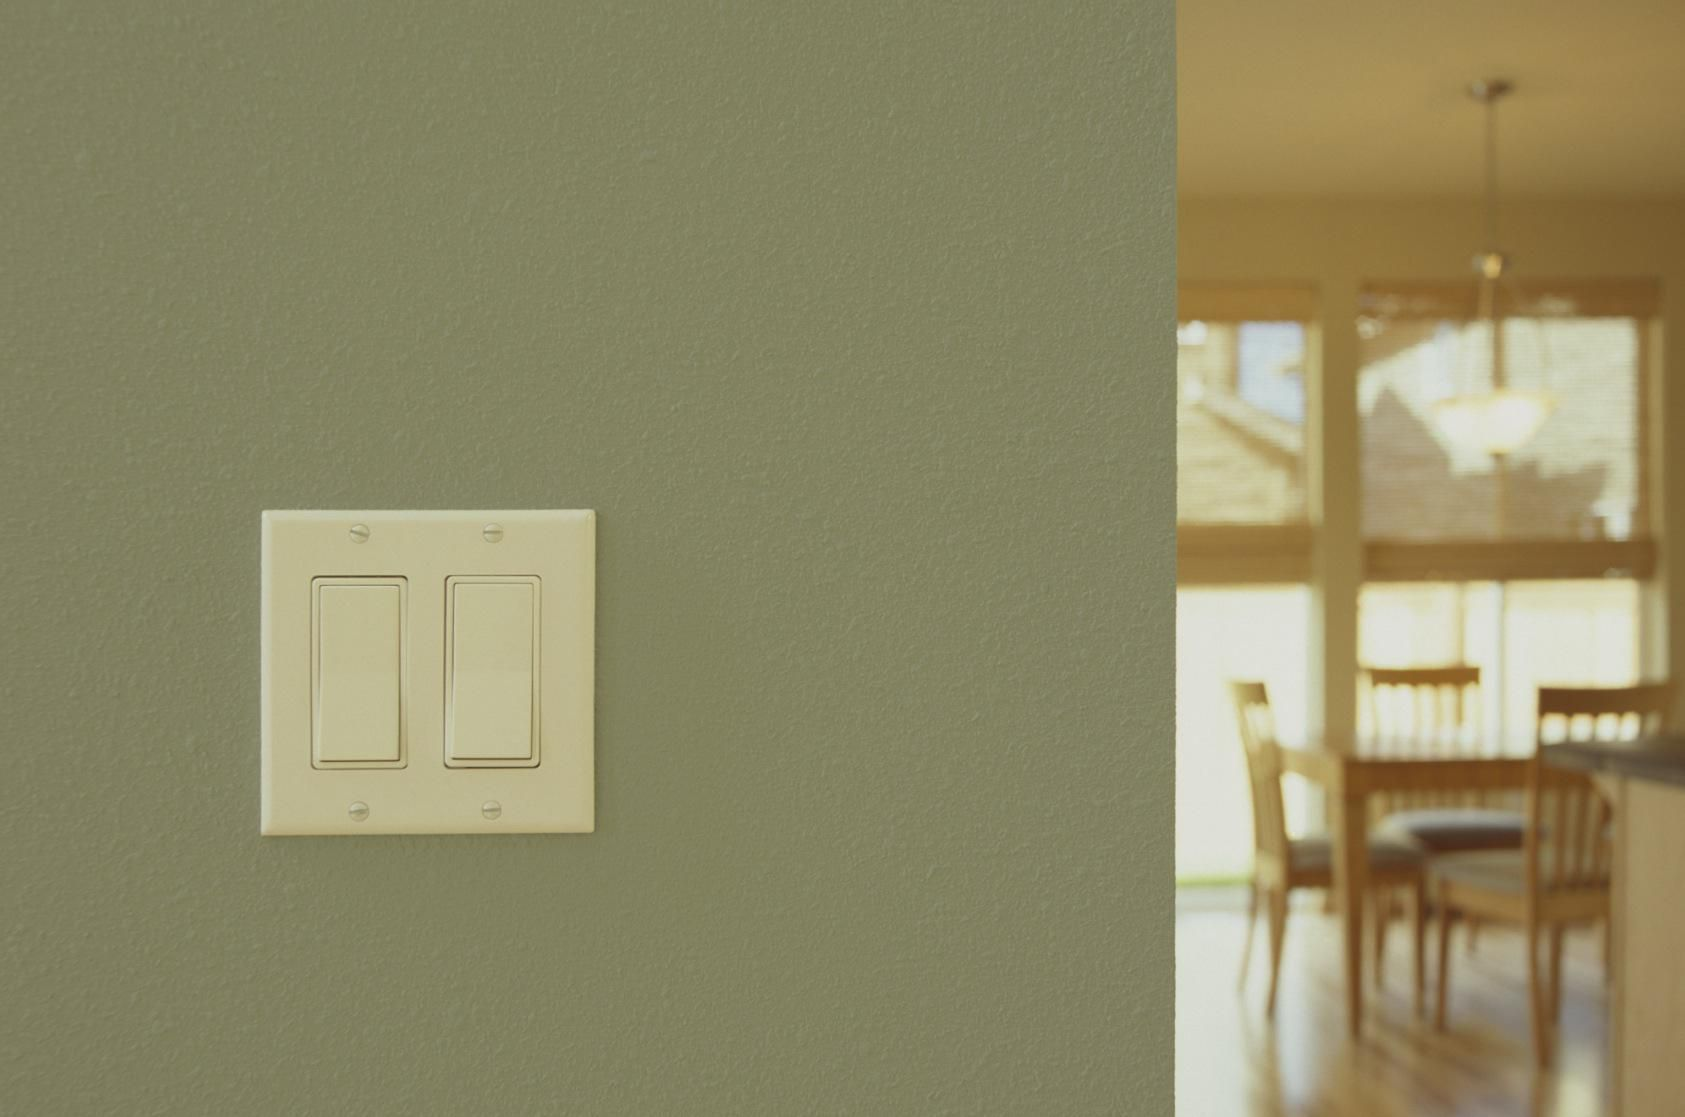 Types Of Electrical Switches In The Home 2 Way Flush Switch Function